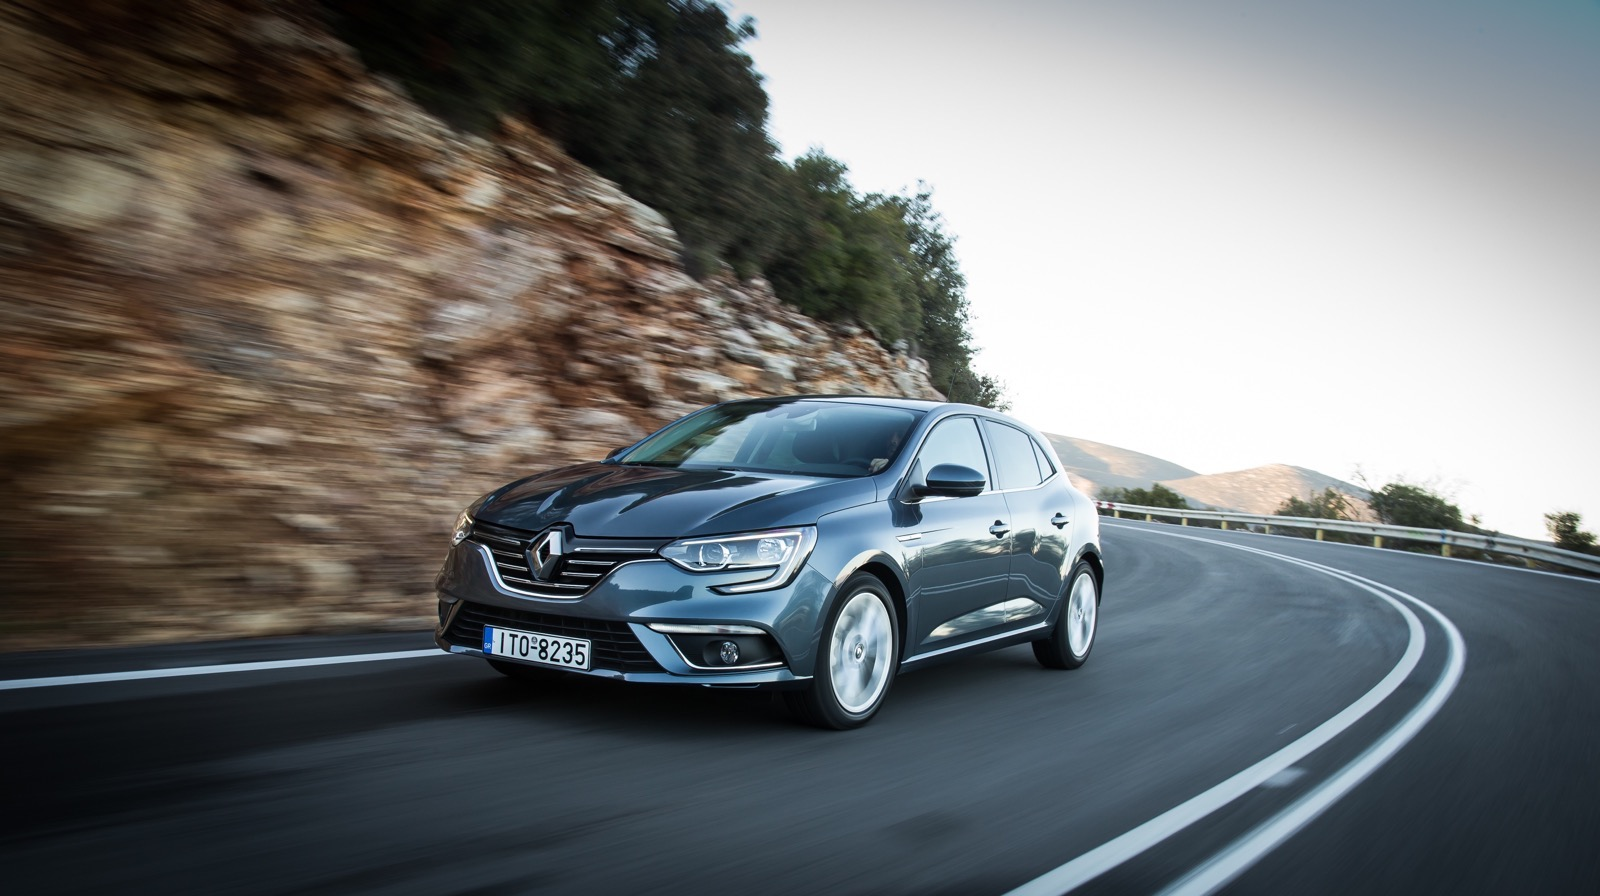 First_Drive_Renault_Megane_107